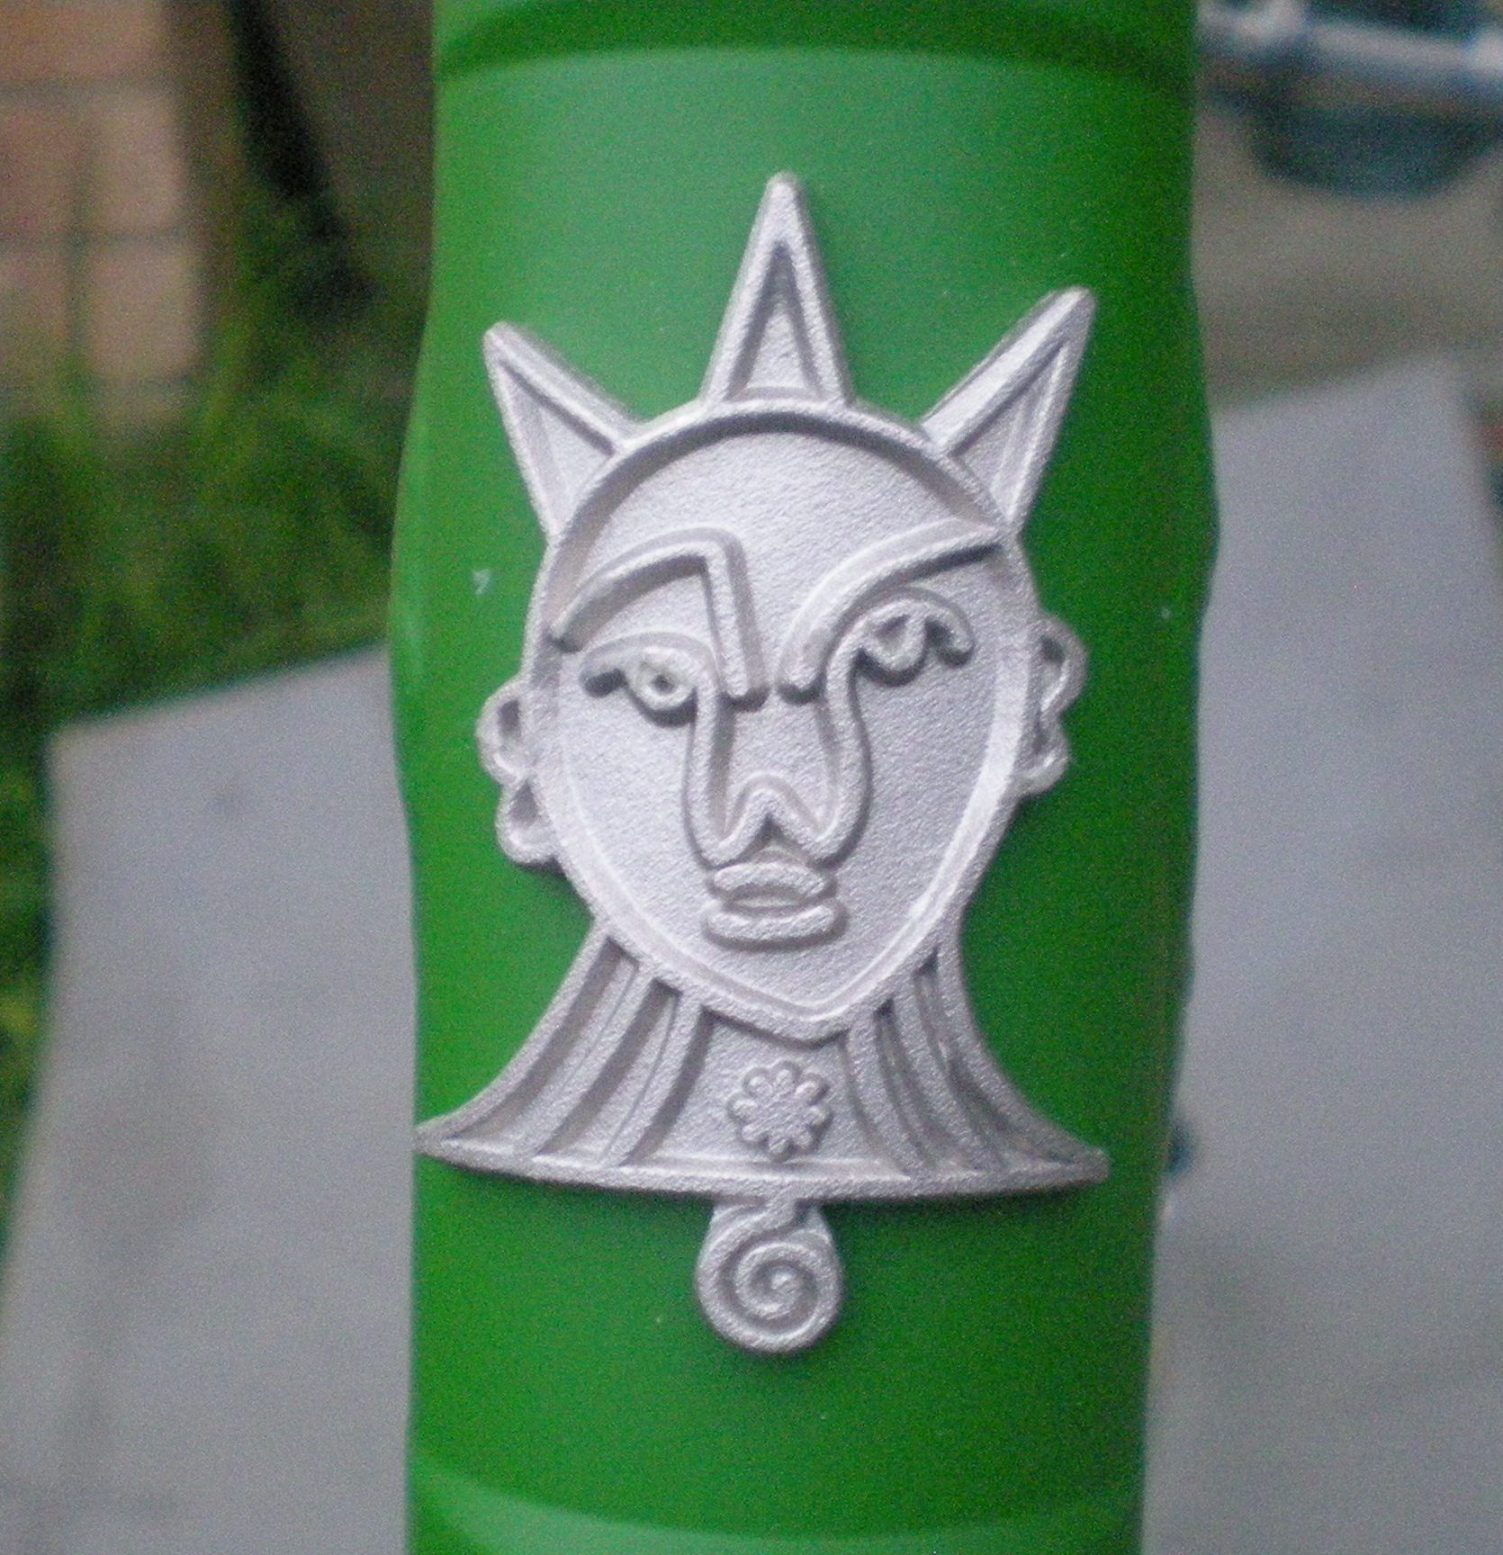 Show us your bike porn-head-badge.jpg